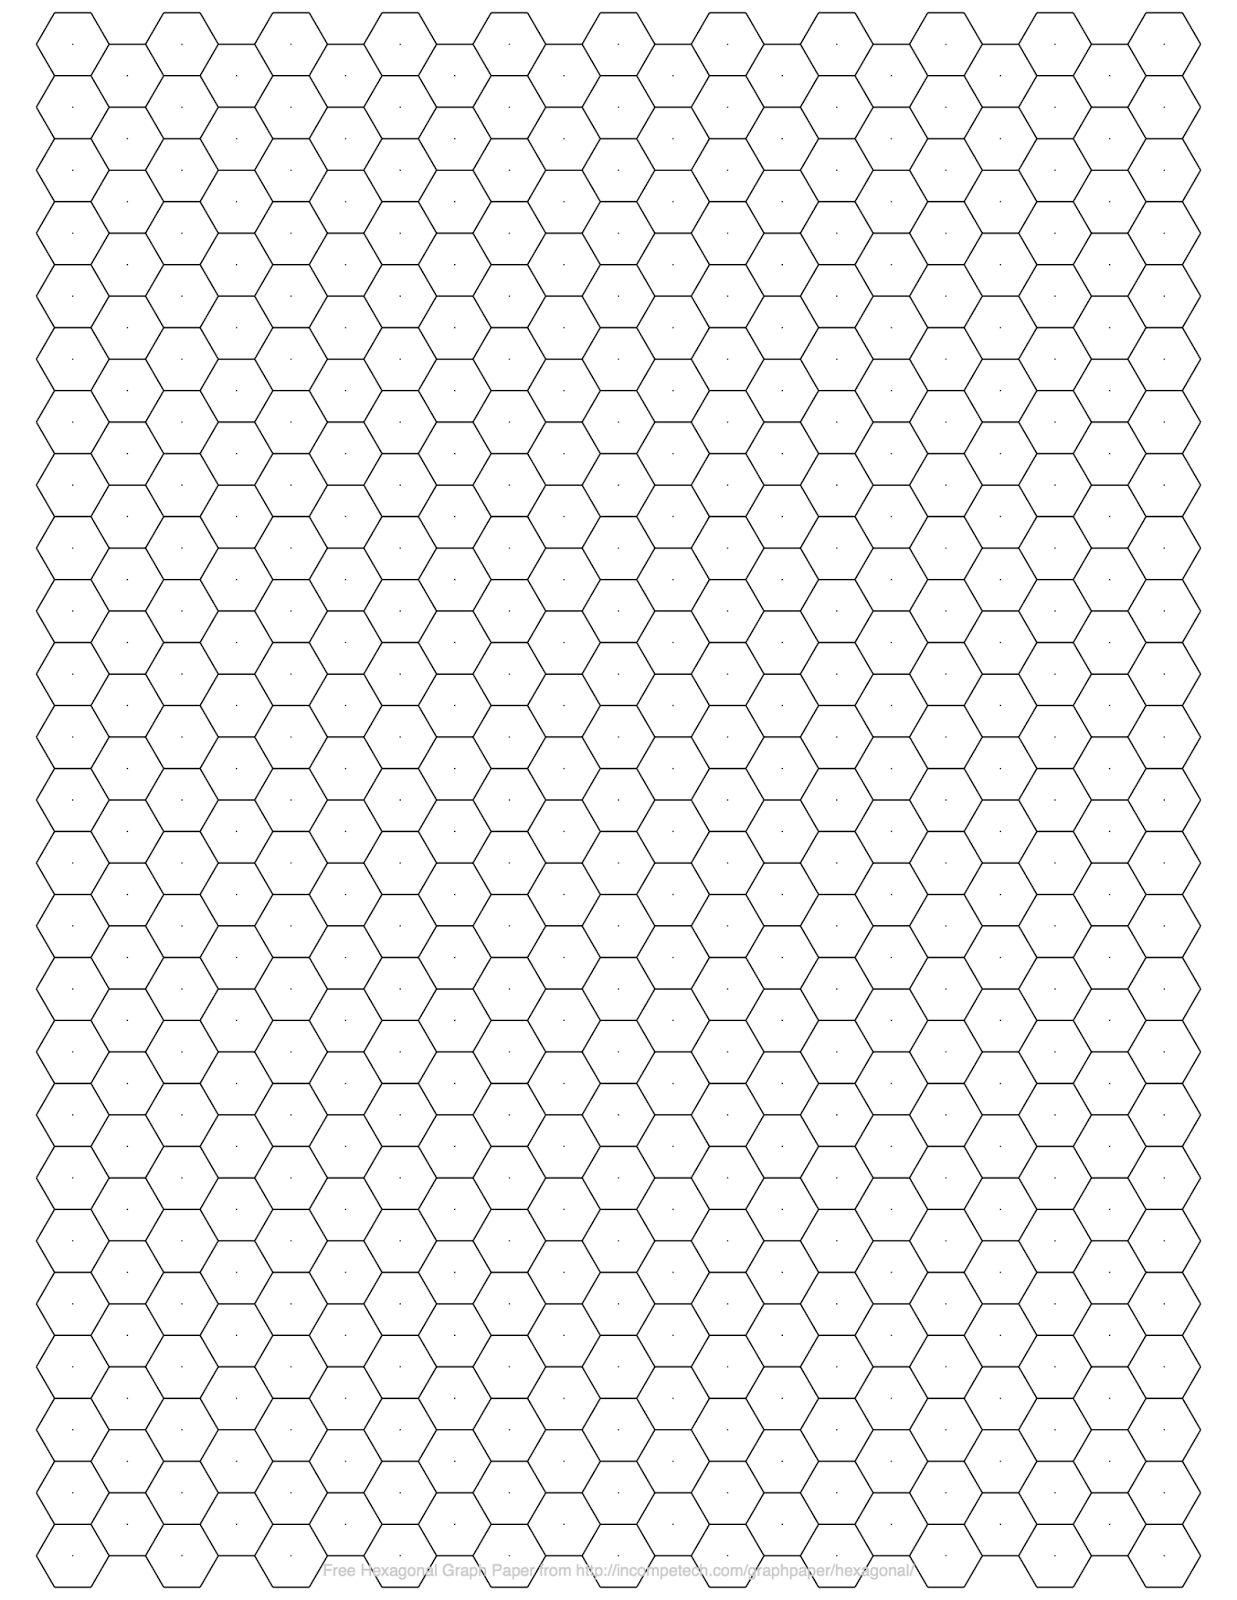 Breathtaking image regarding printable hexagon grid